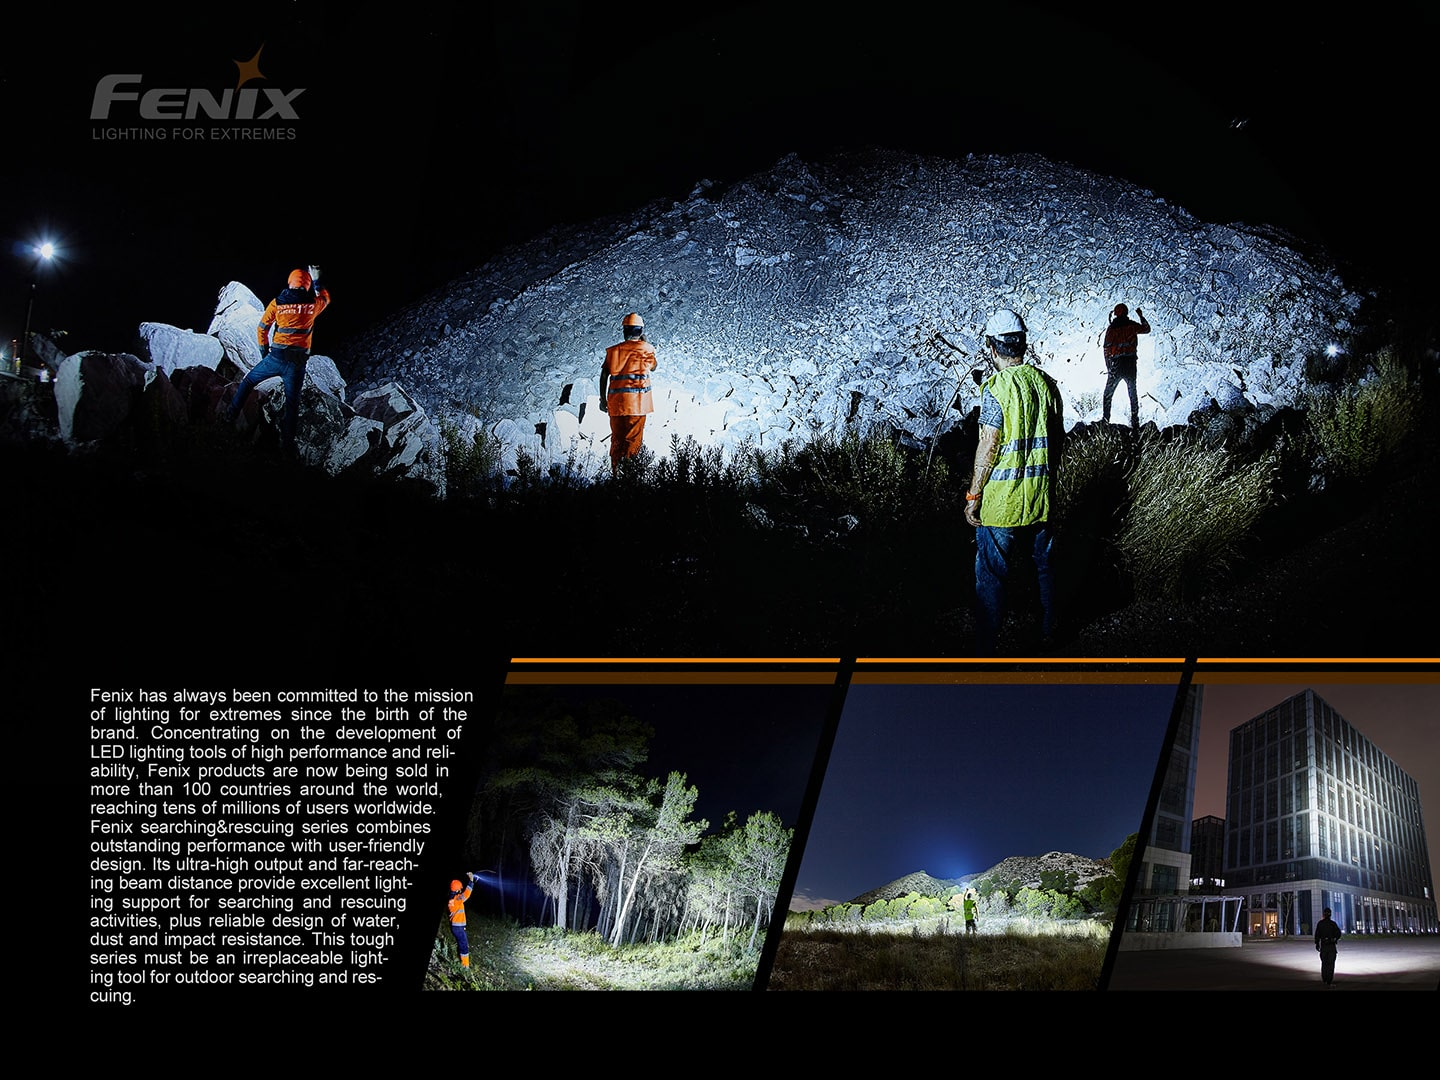 Fenix LR50R Torchlight in India, 12000 Lumens 950m rechargeable flashlight, extremely powerful Long-Range light